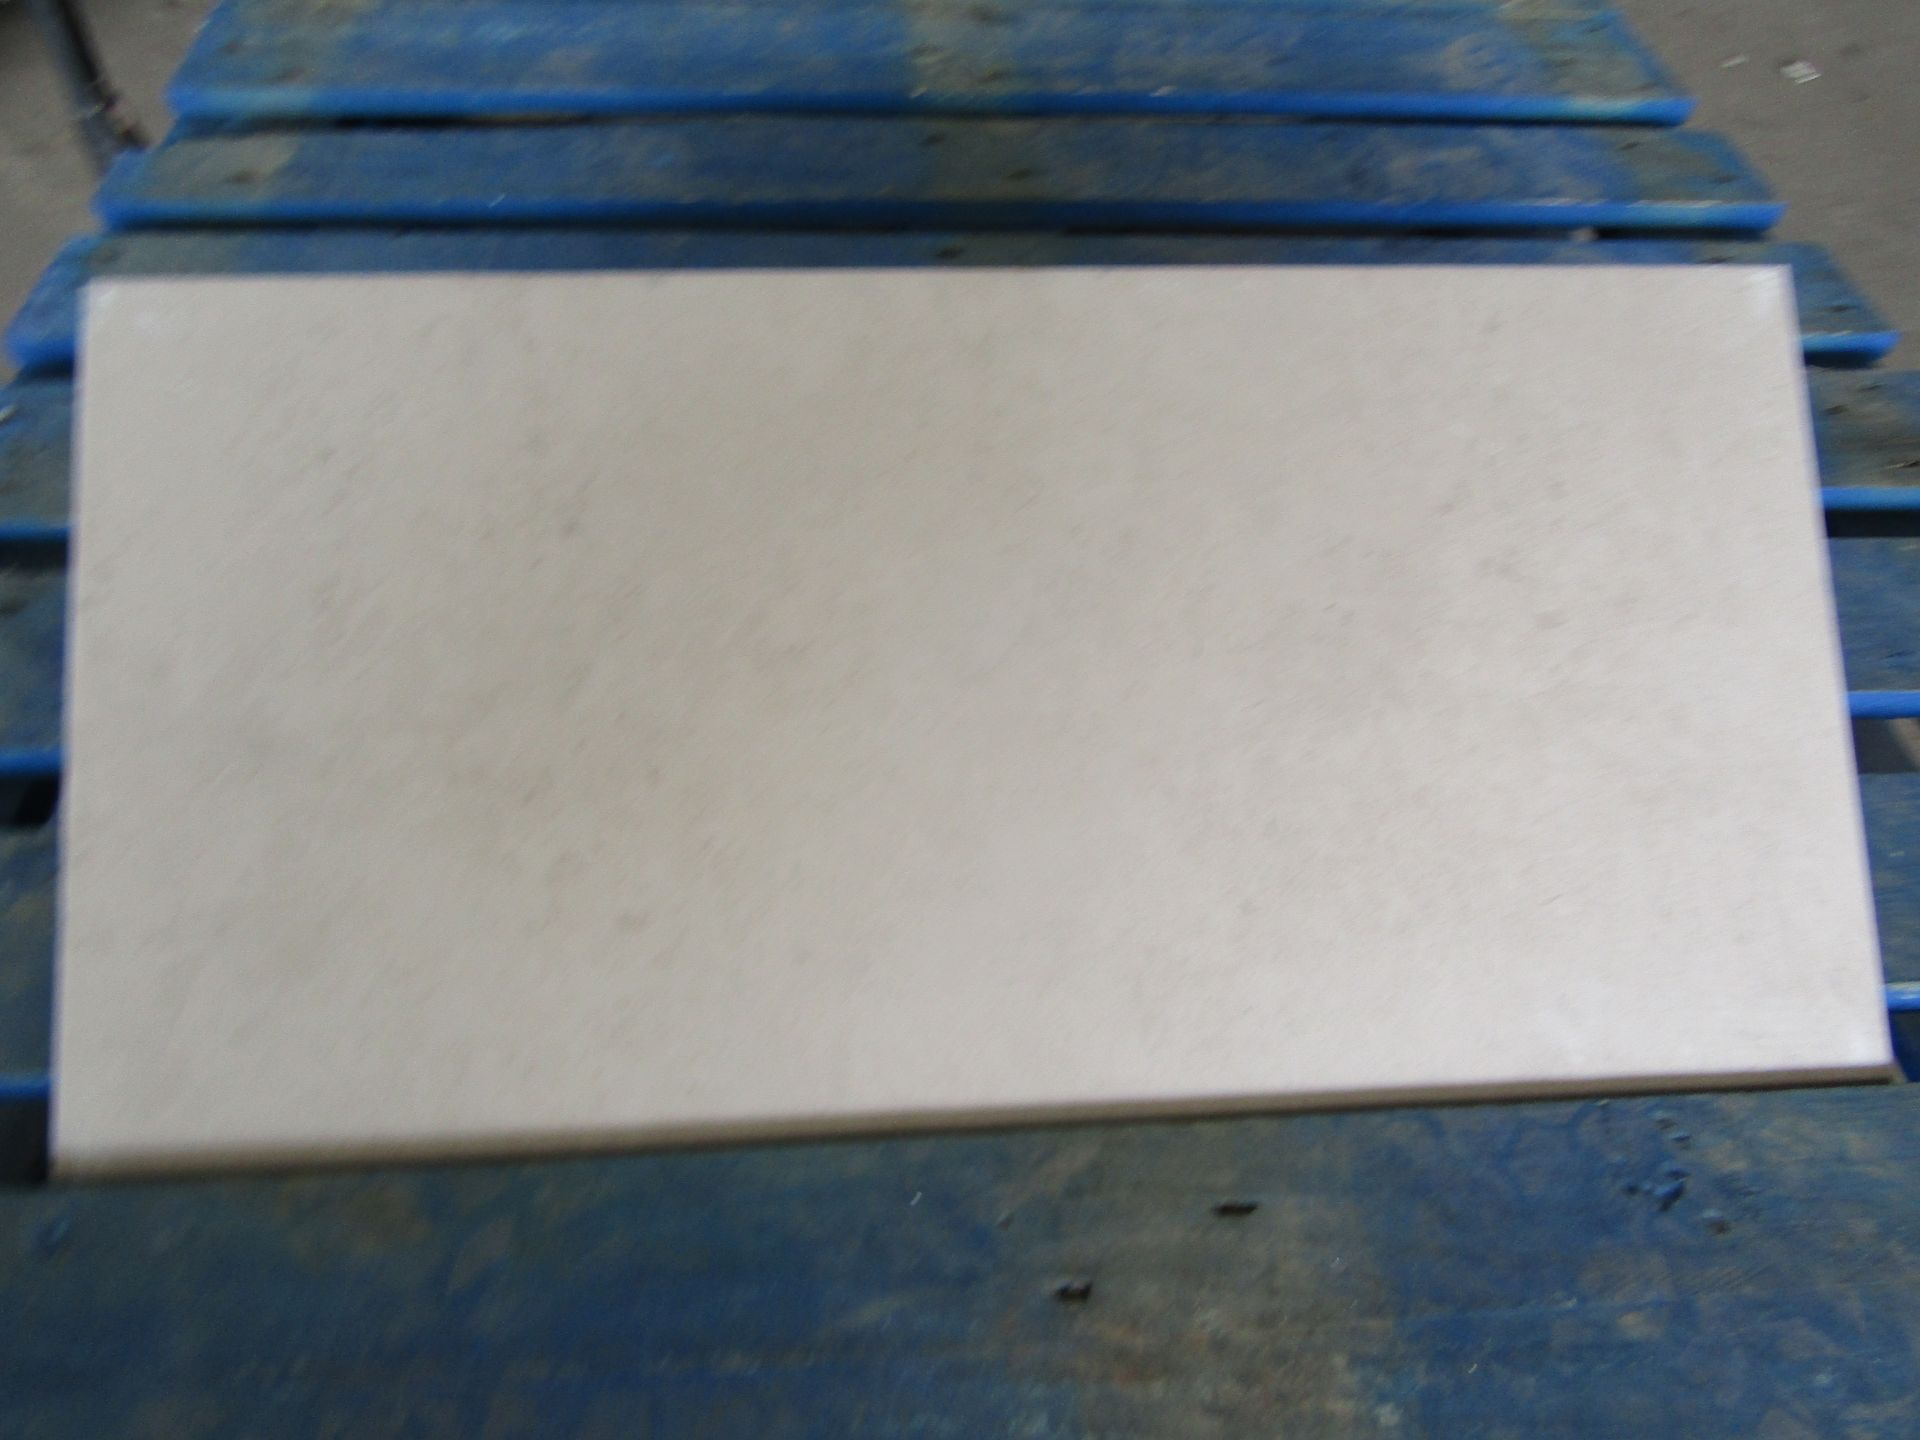 Pallet of 40x Packs of 5 Natural Mink Matt Finish 300x600 wall and Floor Tiles By Johnsons, New, the